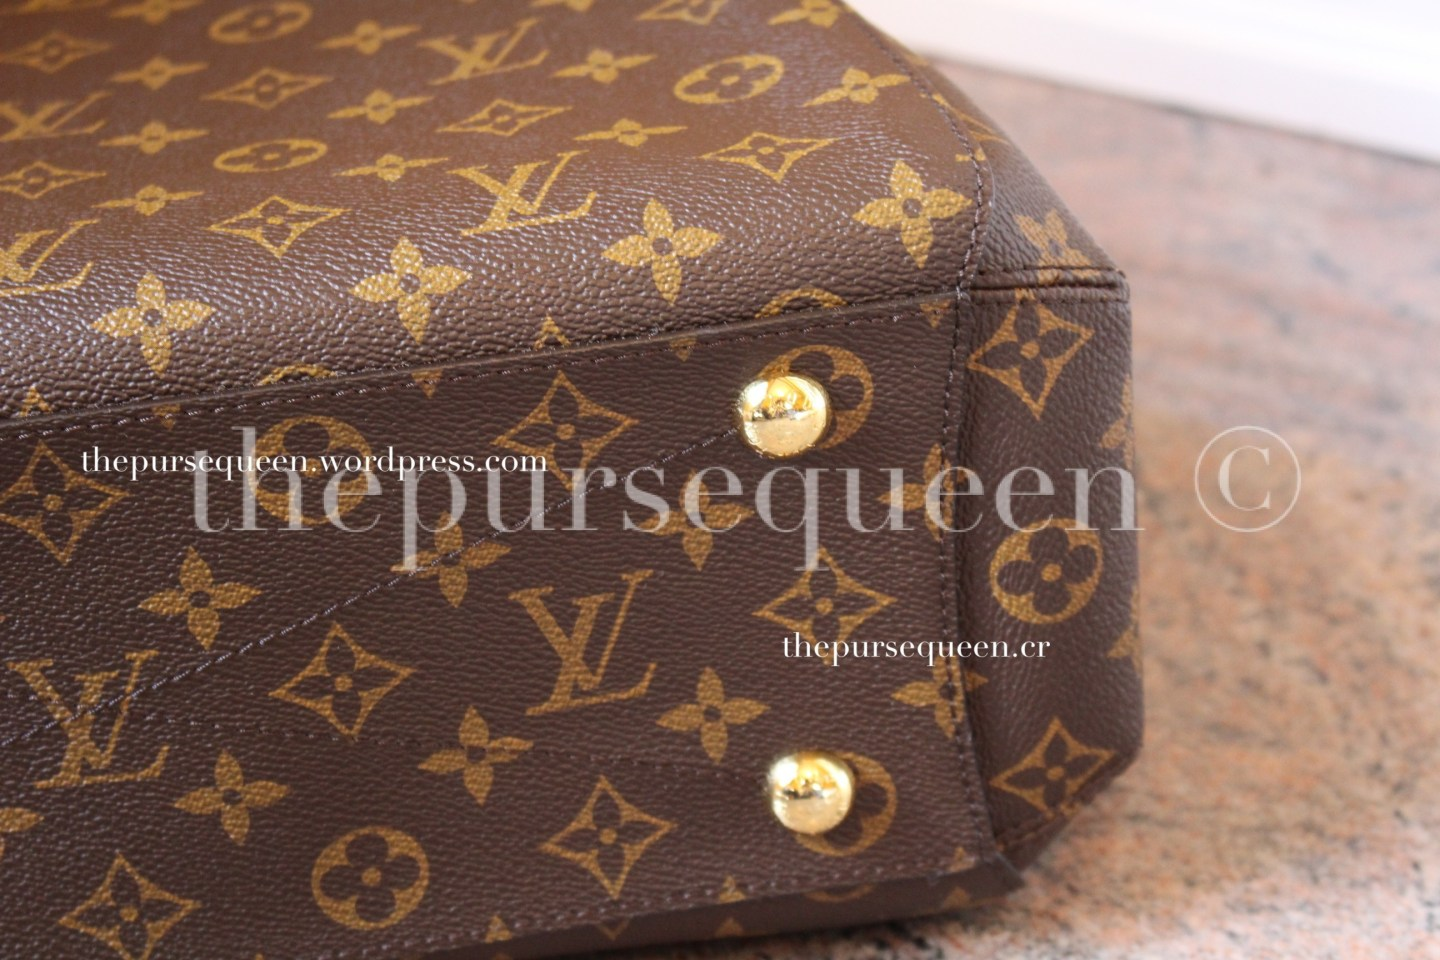 louis vuitton montaigne replica #replicabag #replicabags hardware bottom closeup